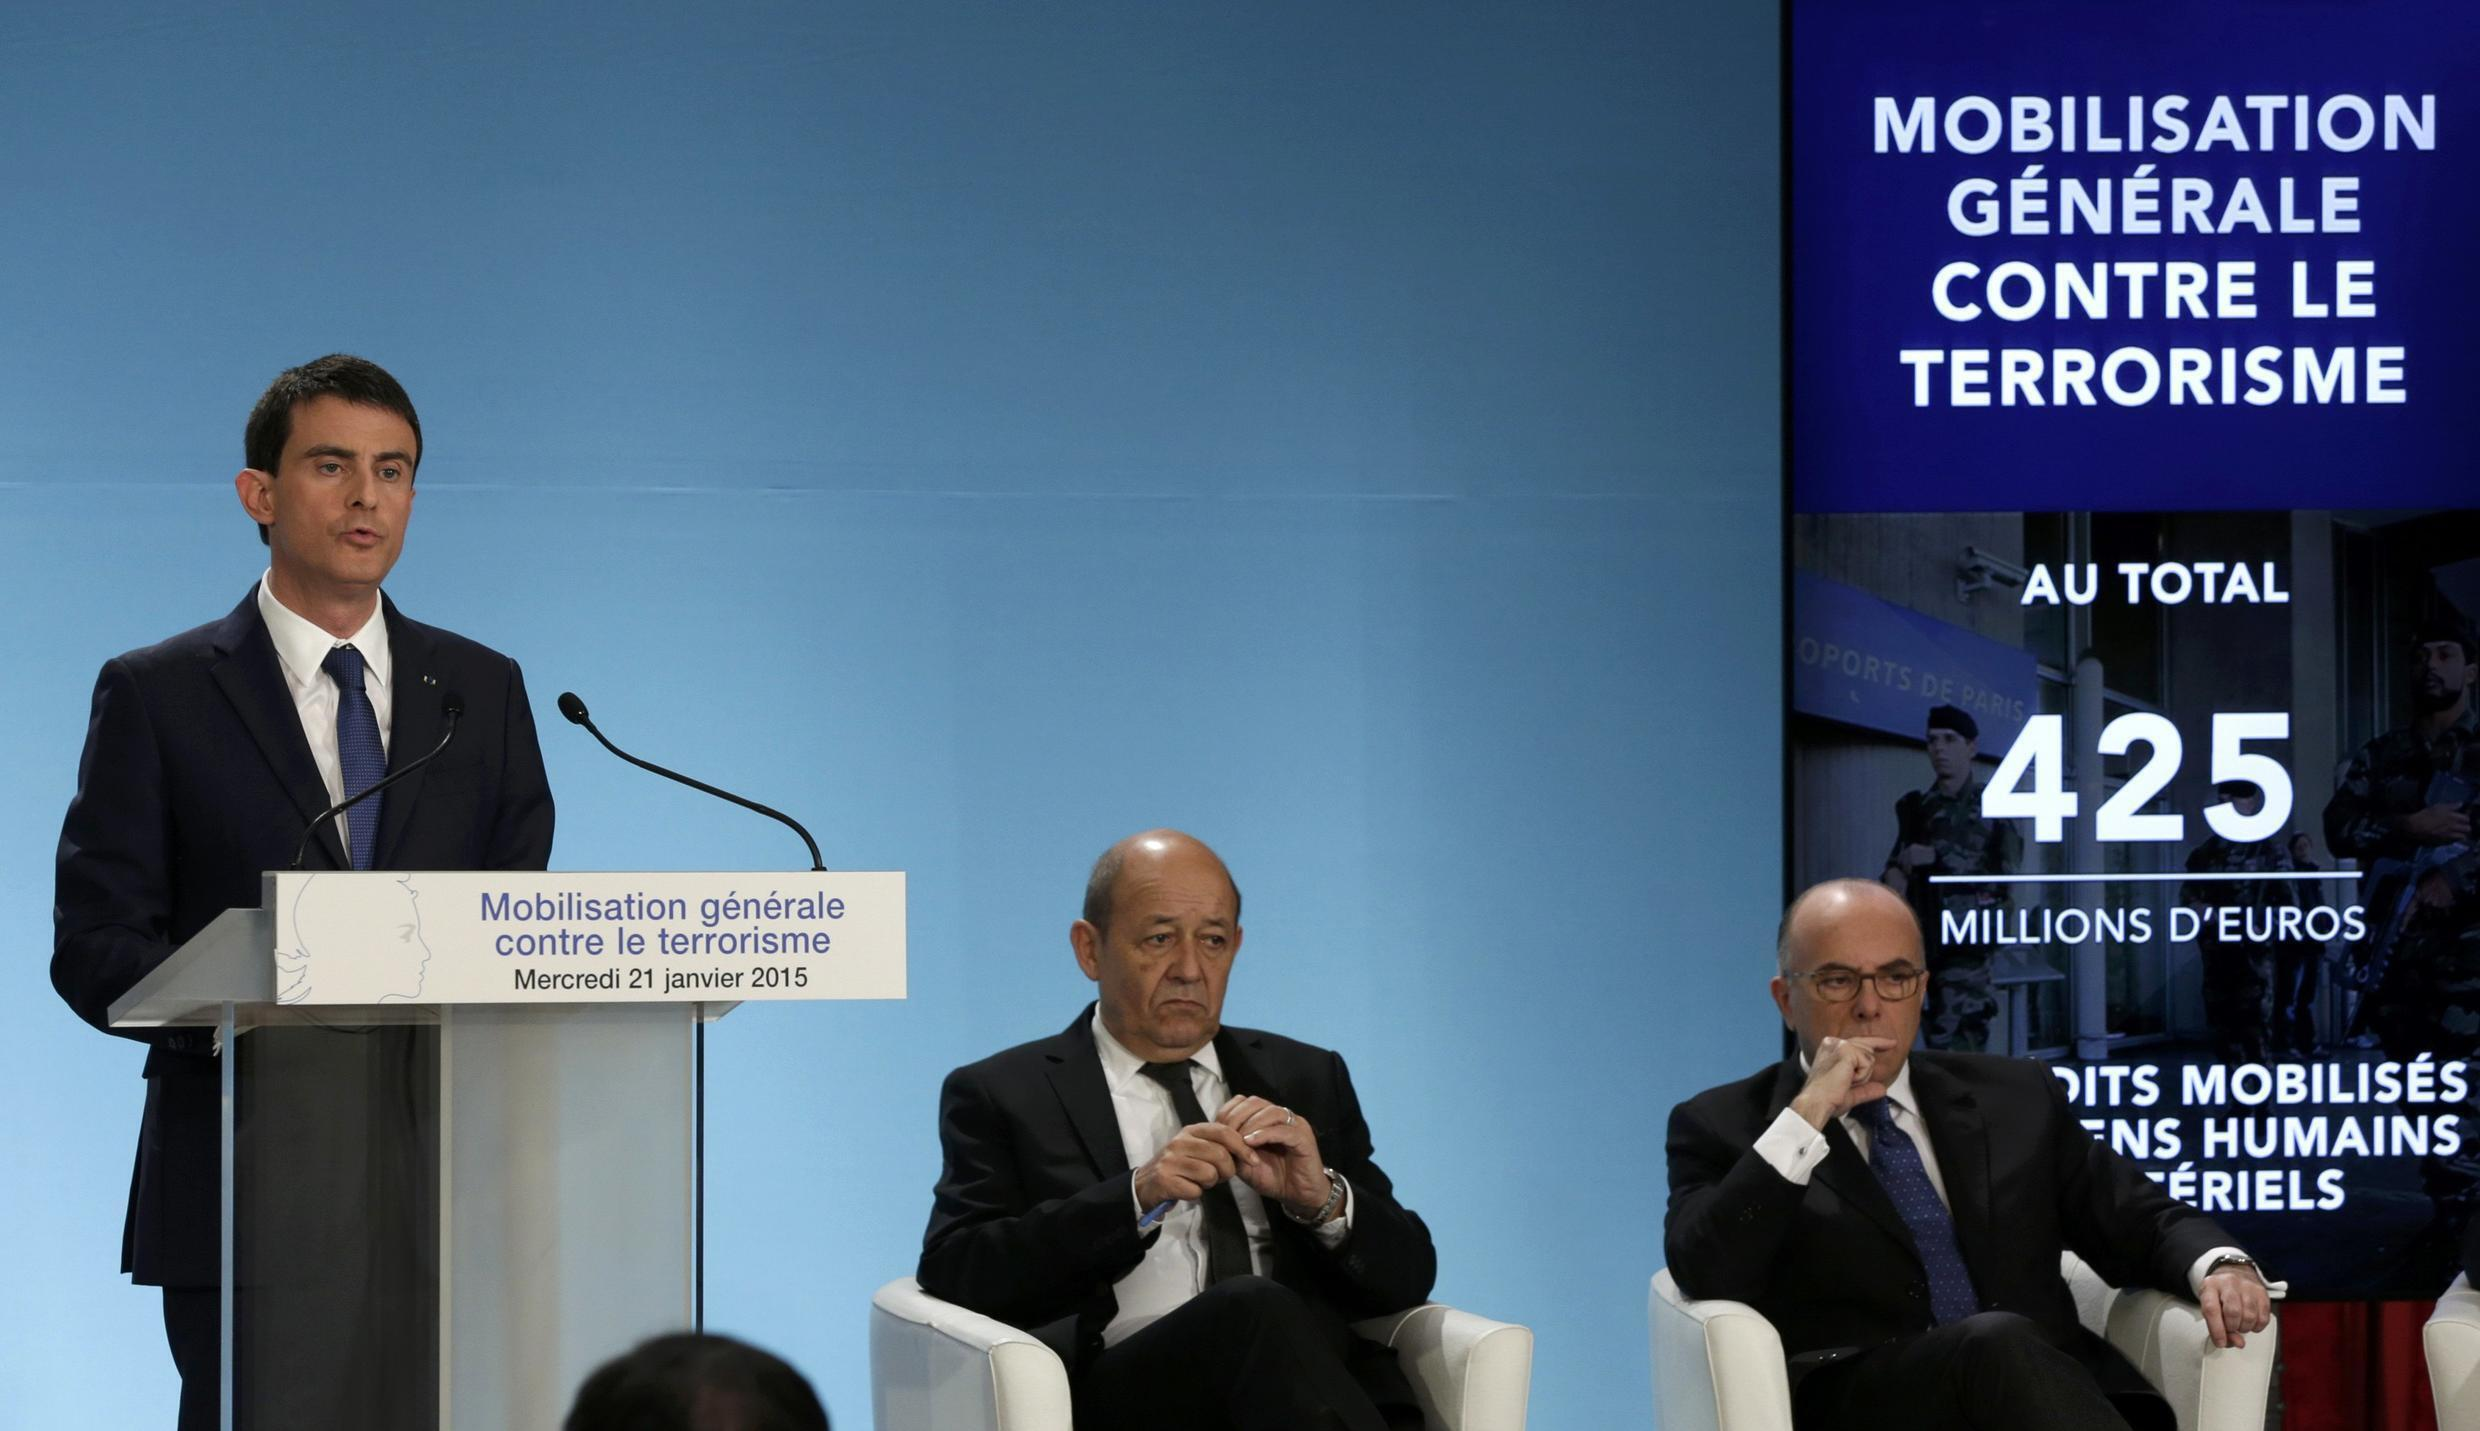 French Defence Minister Jean-Yves Le Drian (C) and Interior Minister Bernard Cazeneuve (R) listen as Prime Minister Manuel Valls outlines his plans to tackle jihadist violence